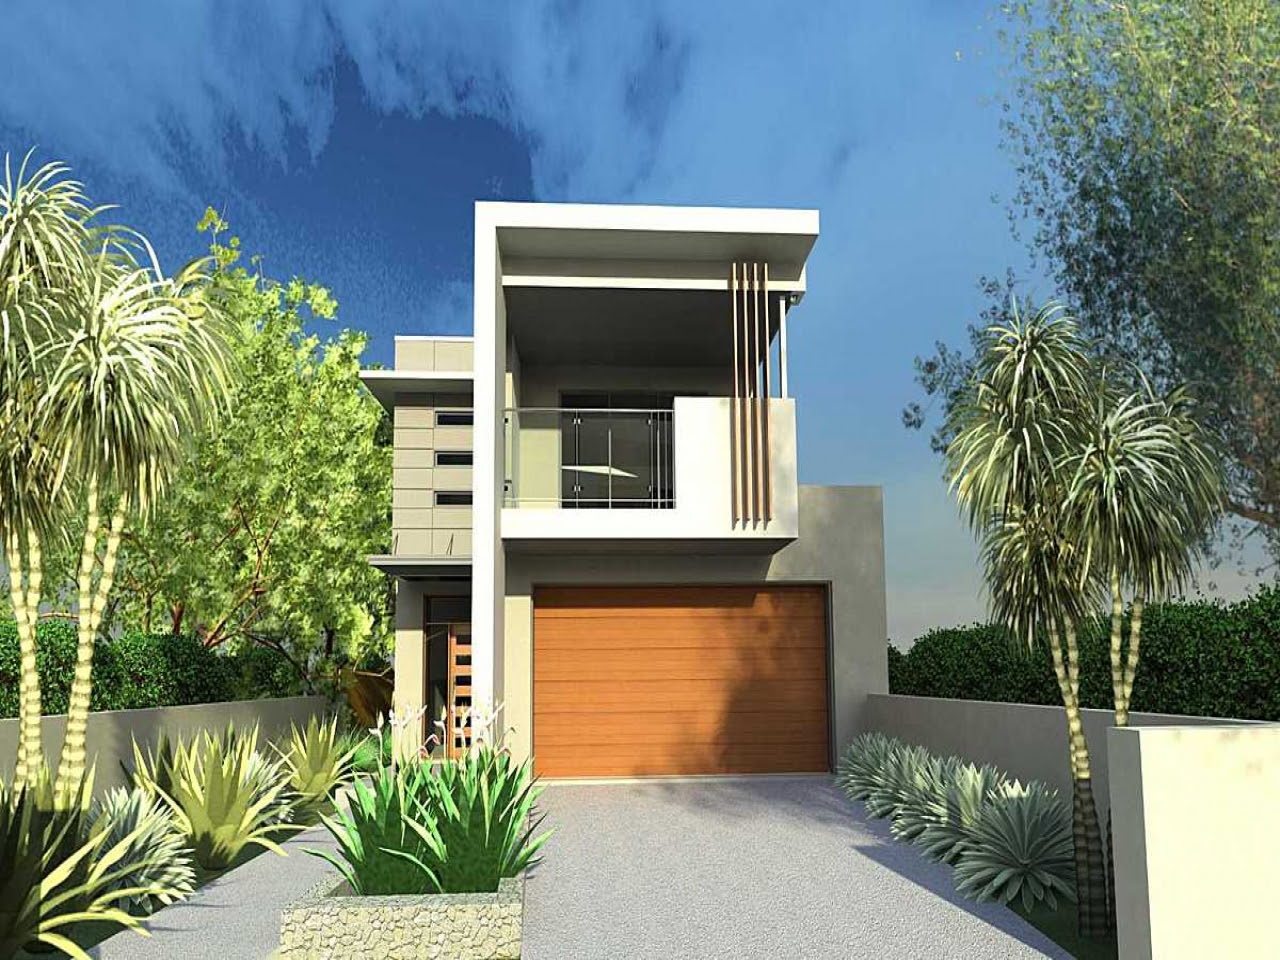 Narrow  Lot  House  Plans  with Front Garage  Lot  Narrow  Plan